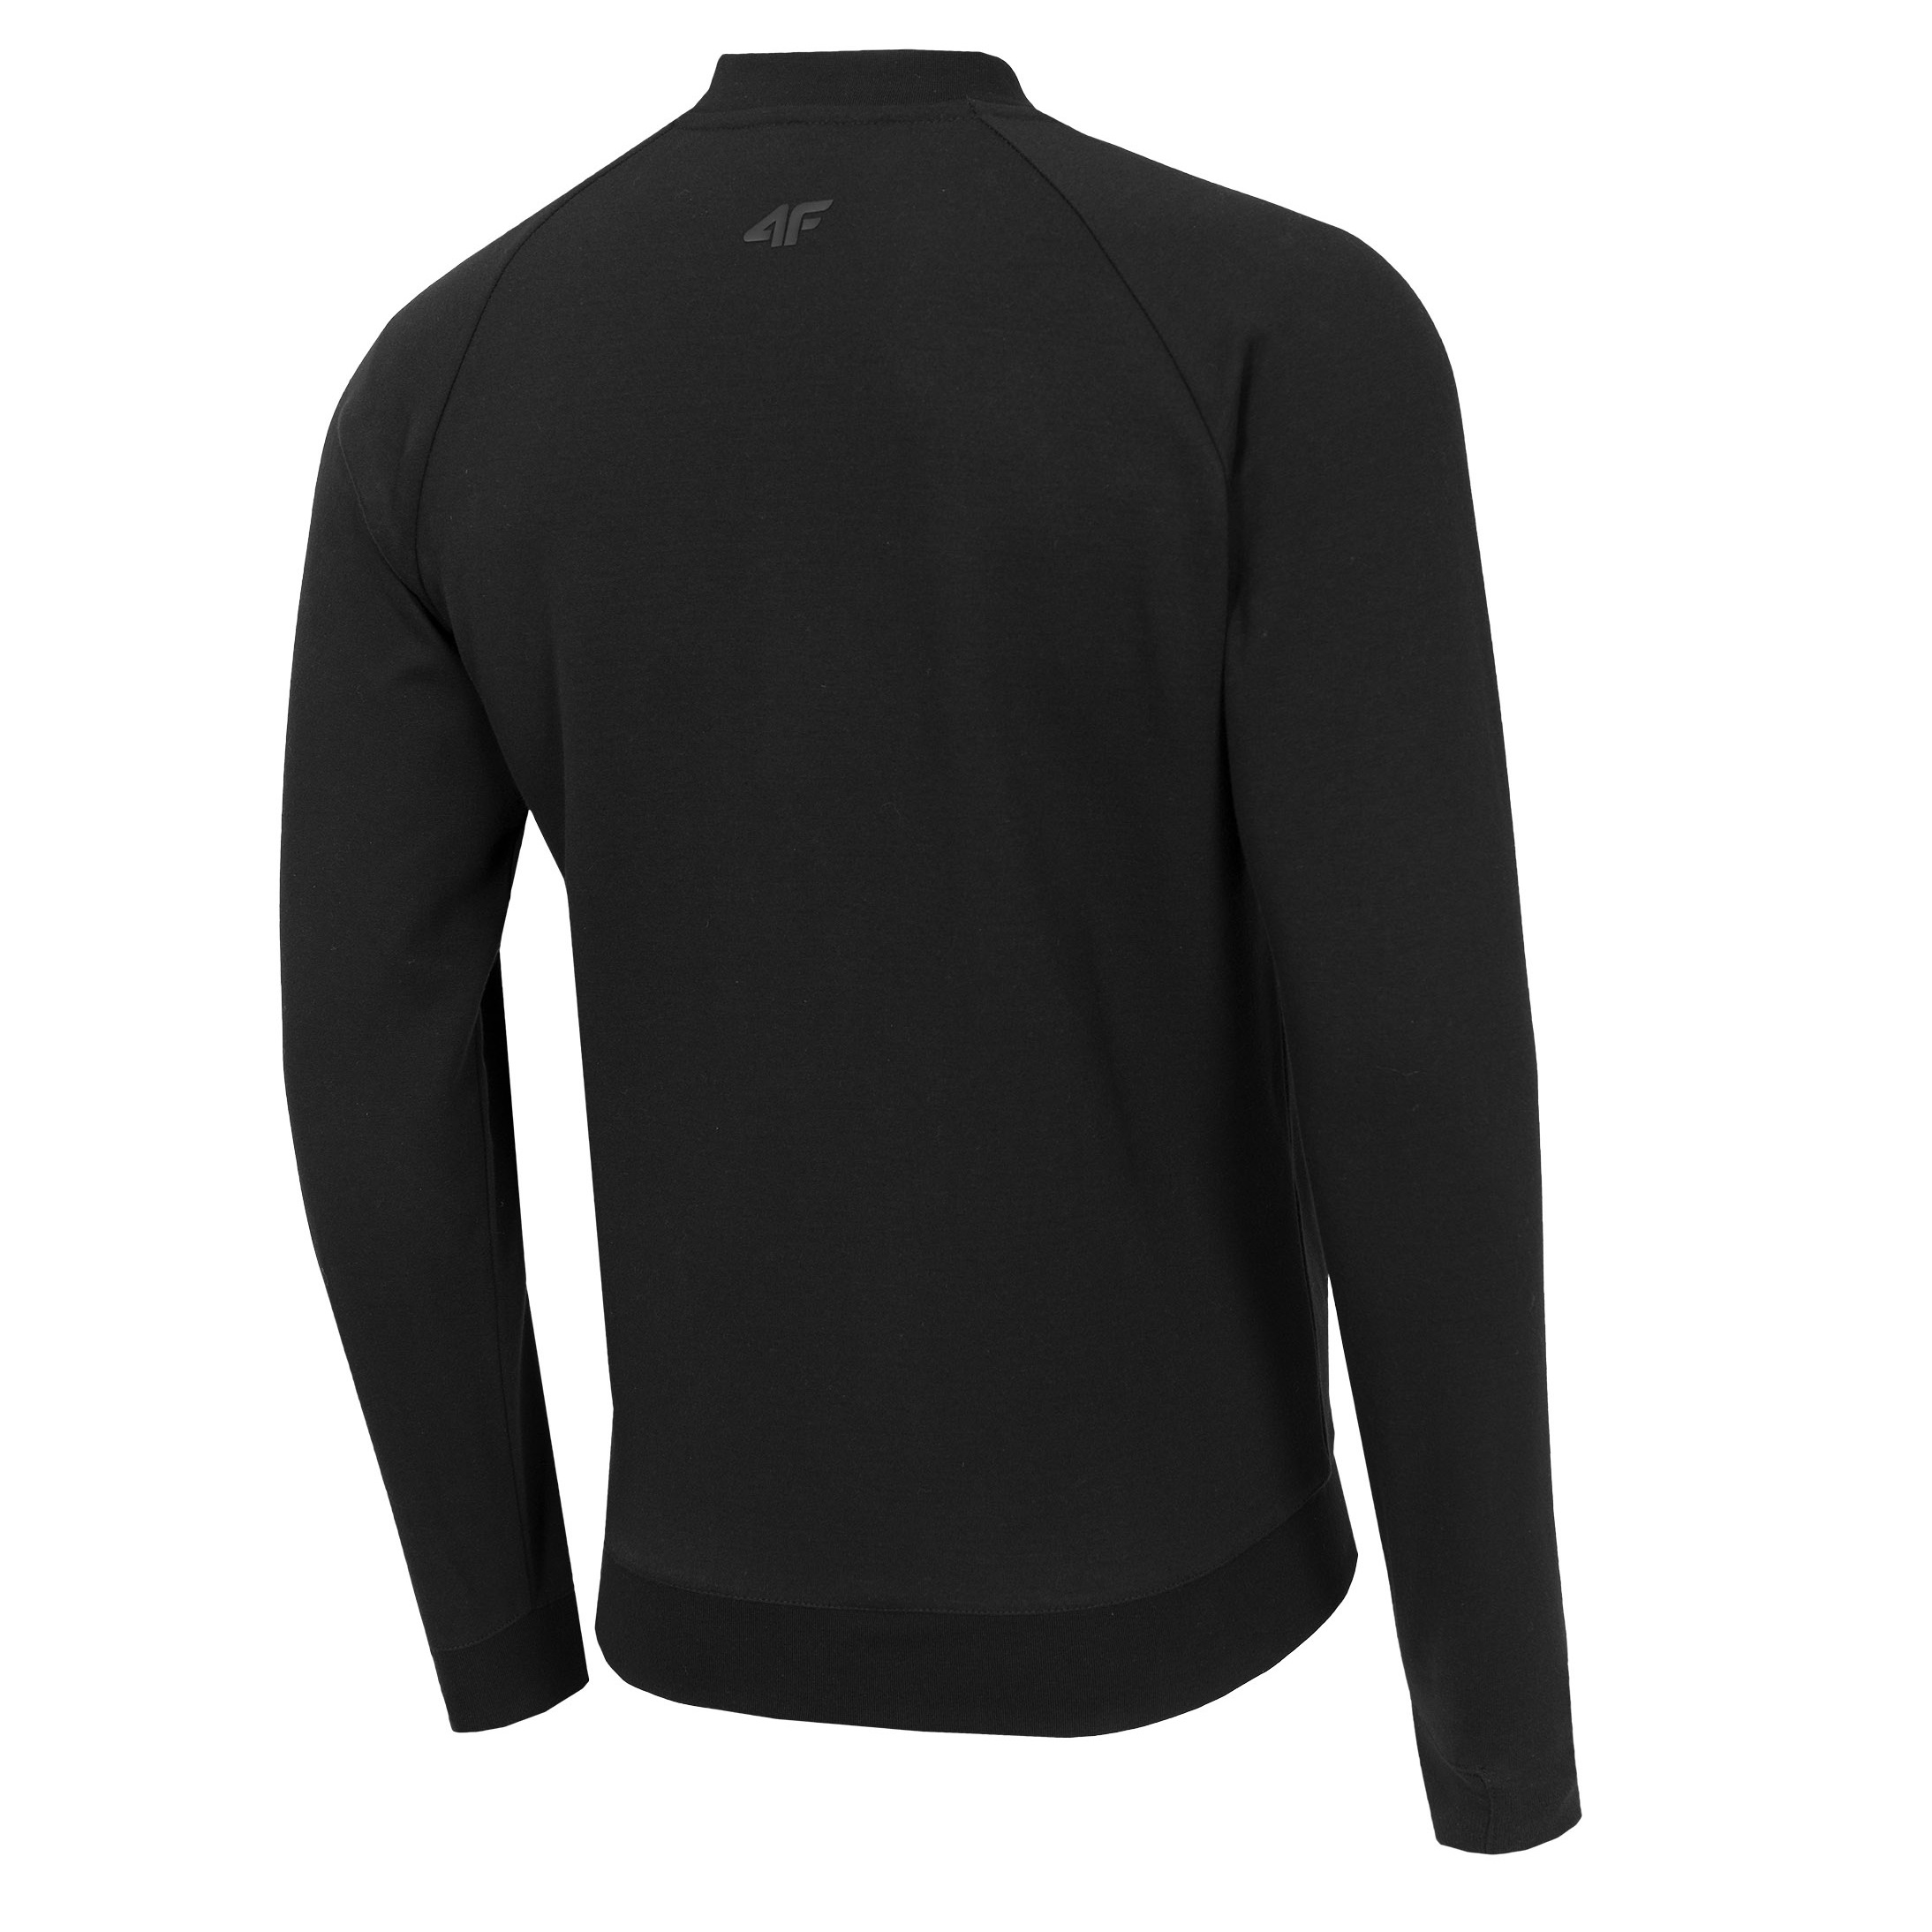 Clothing -  4f Men Sweatshirt BLM004A